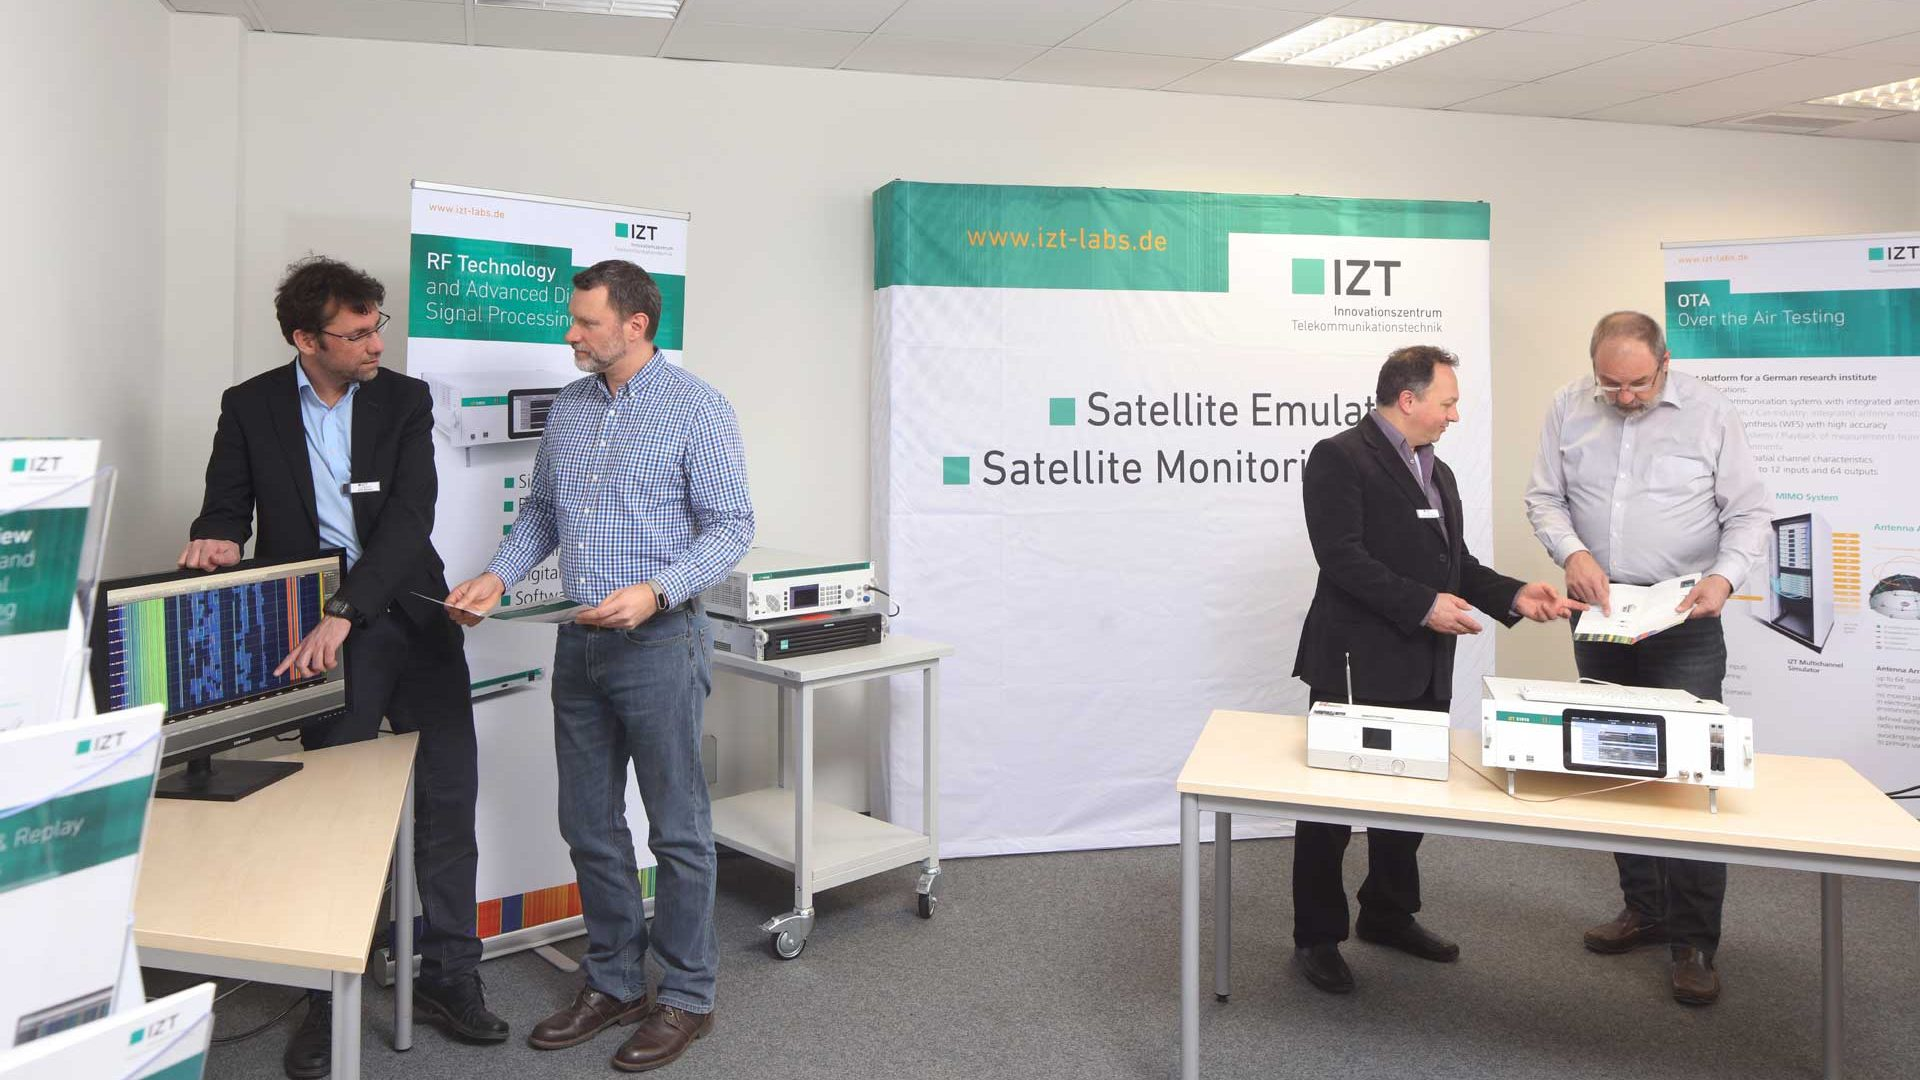 meet IZT at exebitions conferences and inhouse customer days